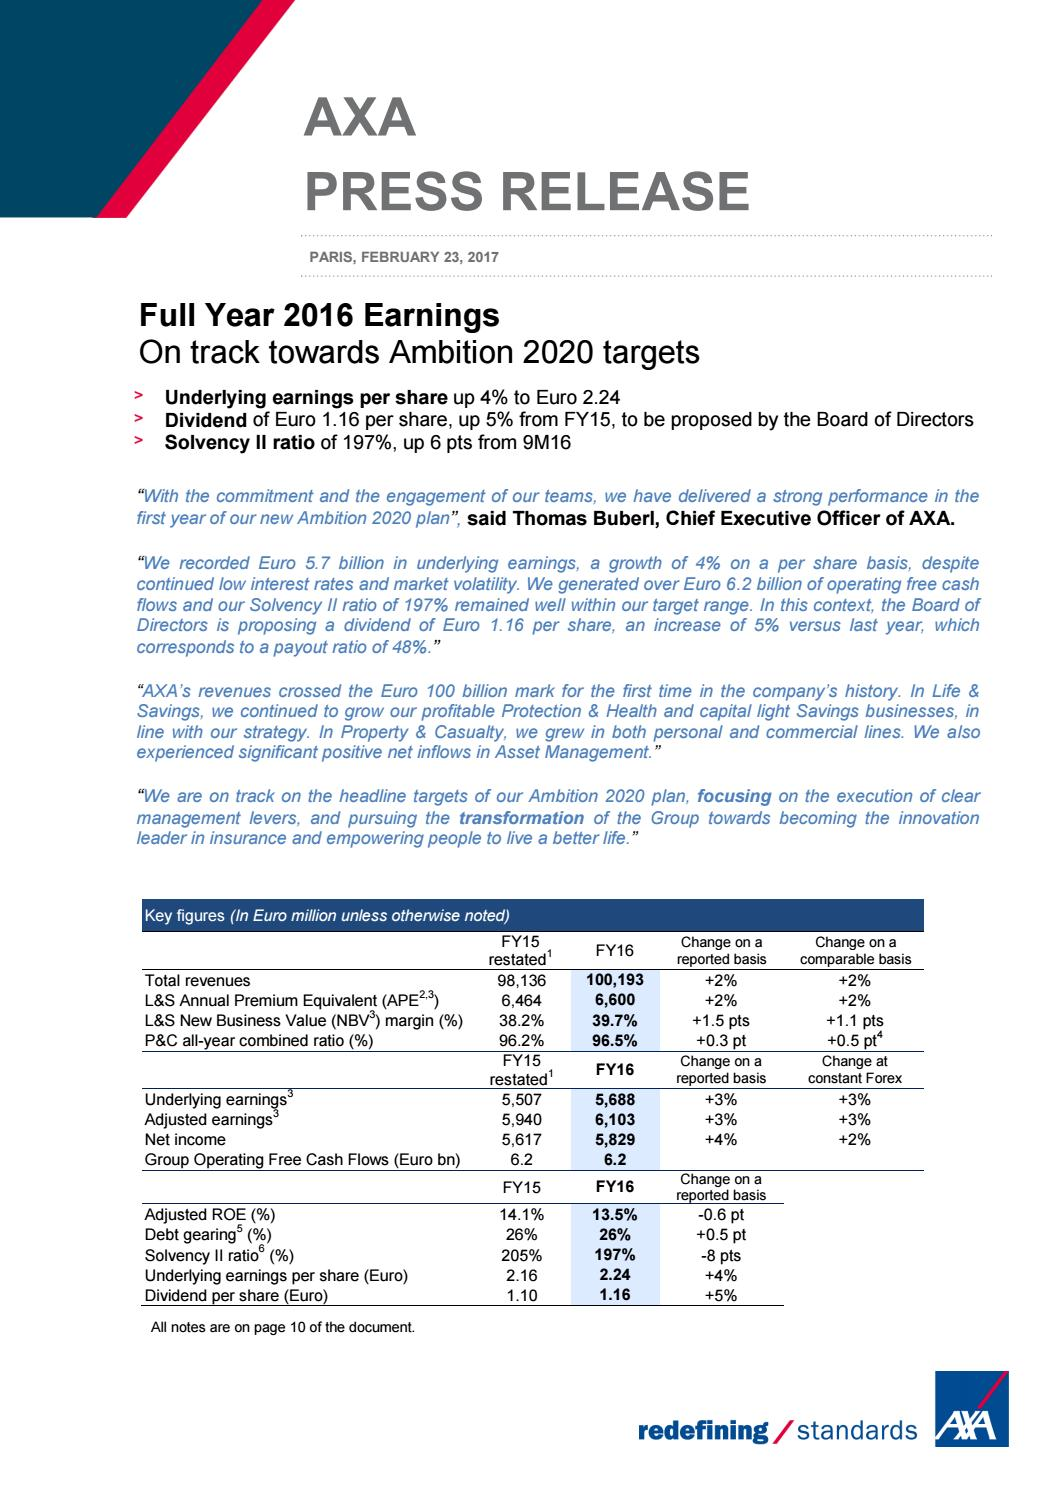 PDF Download: AXA Full Year 2016 Earnings by iPMI Magazine Health and Medical Insurance Assistance News Magazine - Issuu